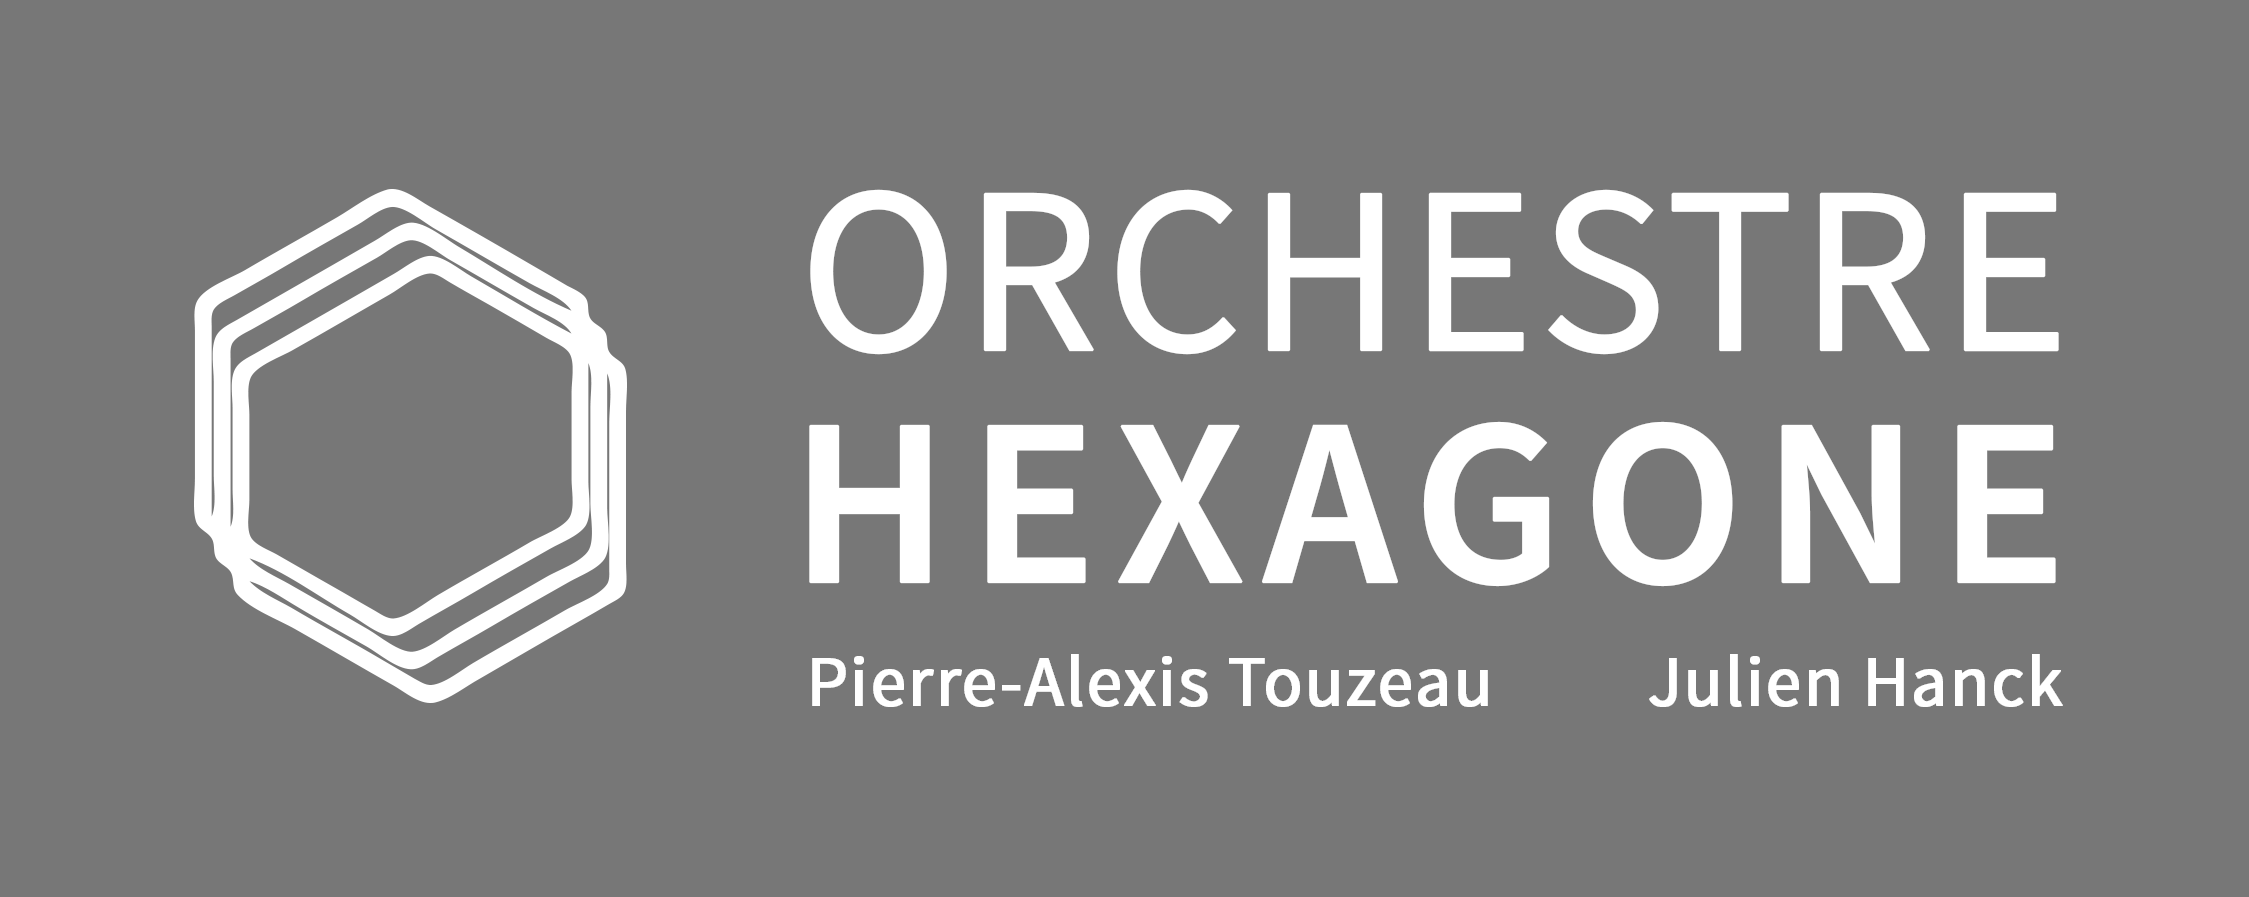 Orchestre Hexagone